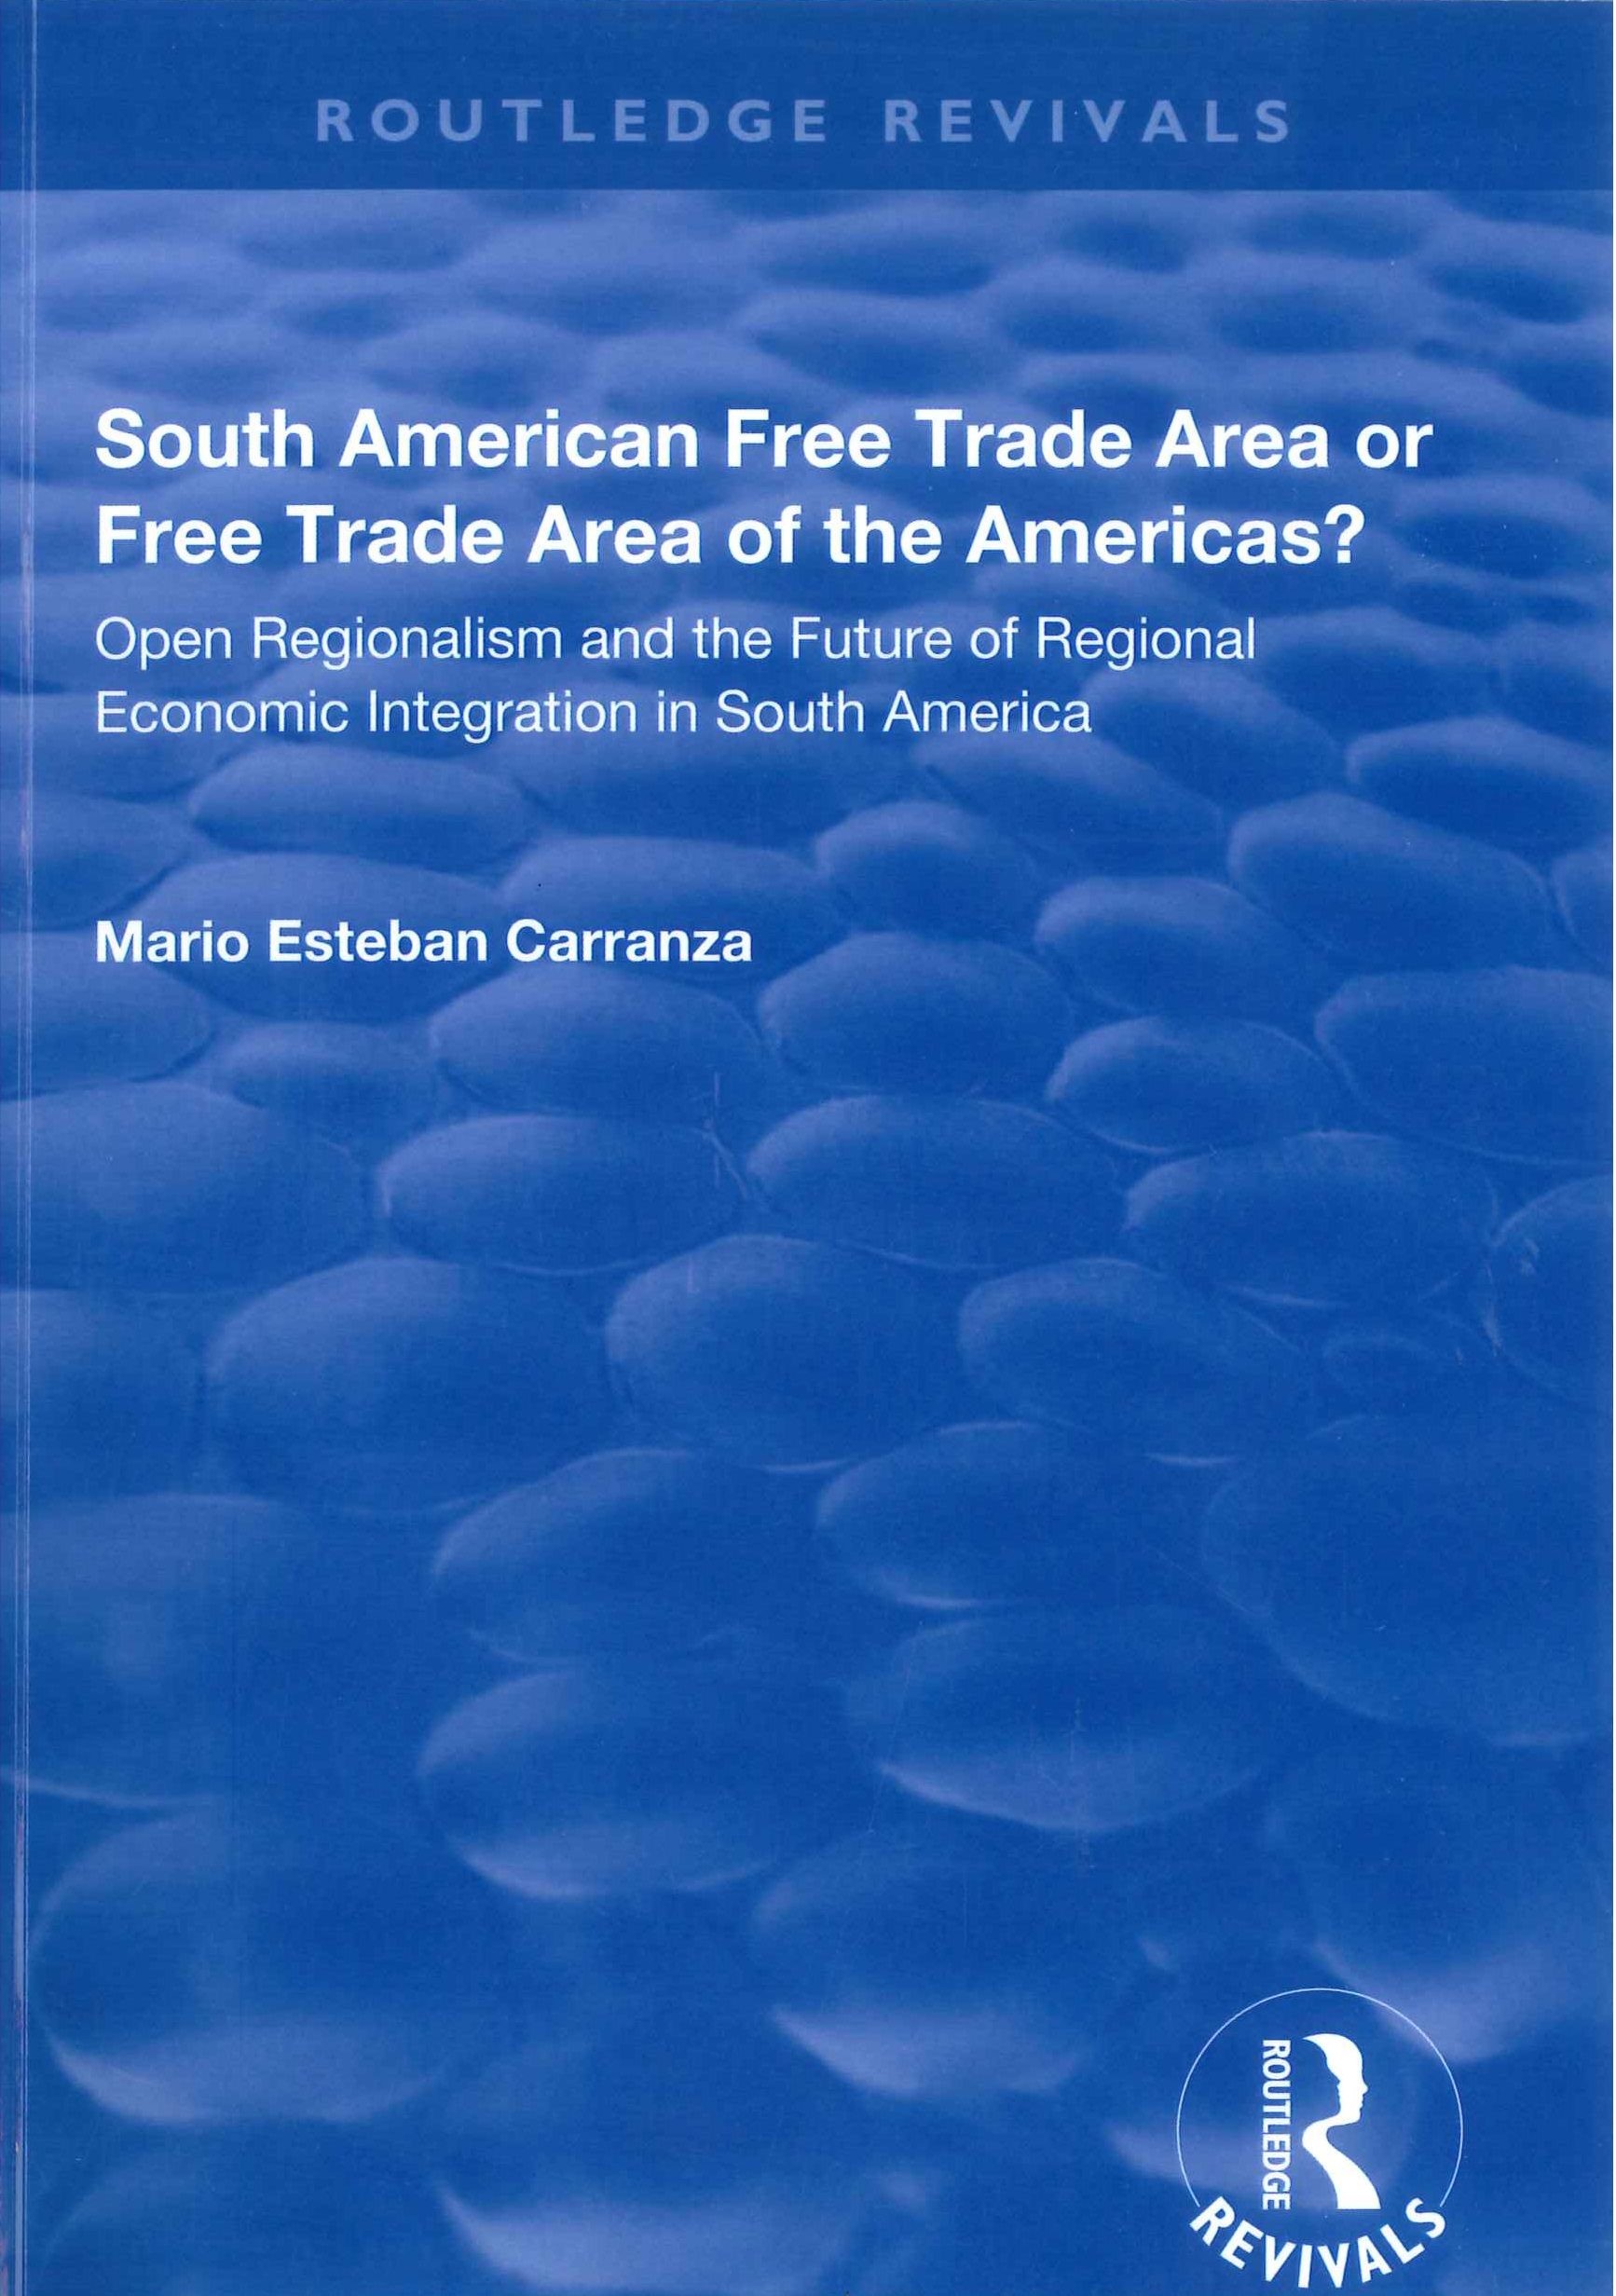 South American free trade area or free trade area of the Americas?:open regionalism and the future of regional economic integration in South America